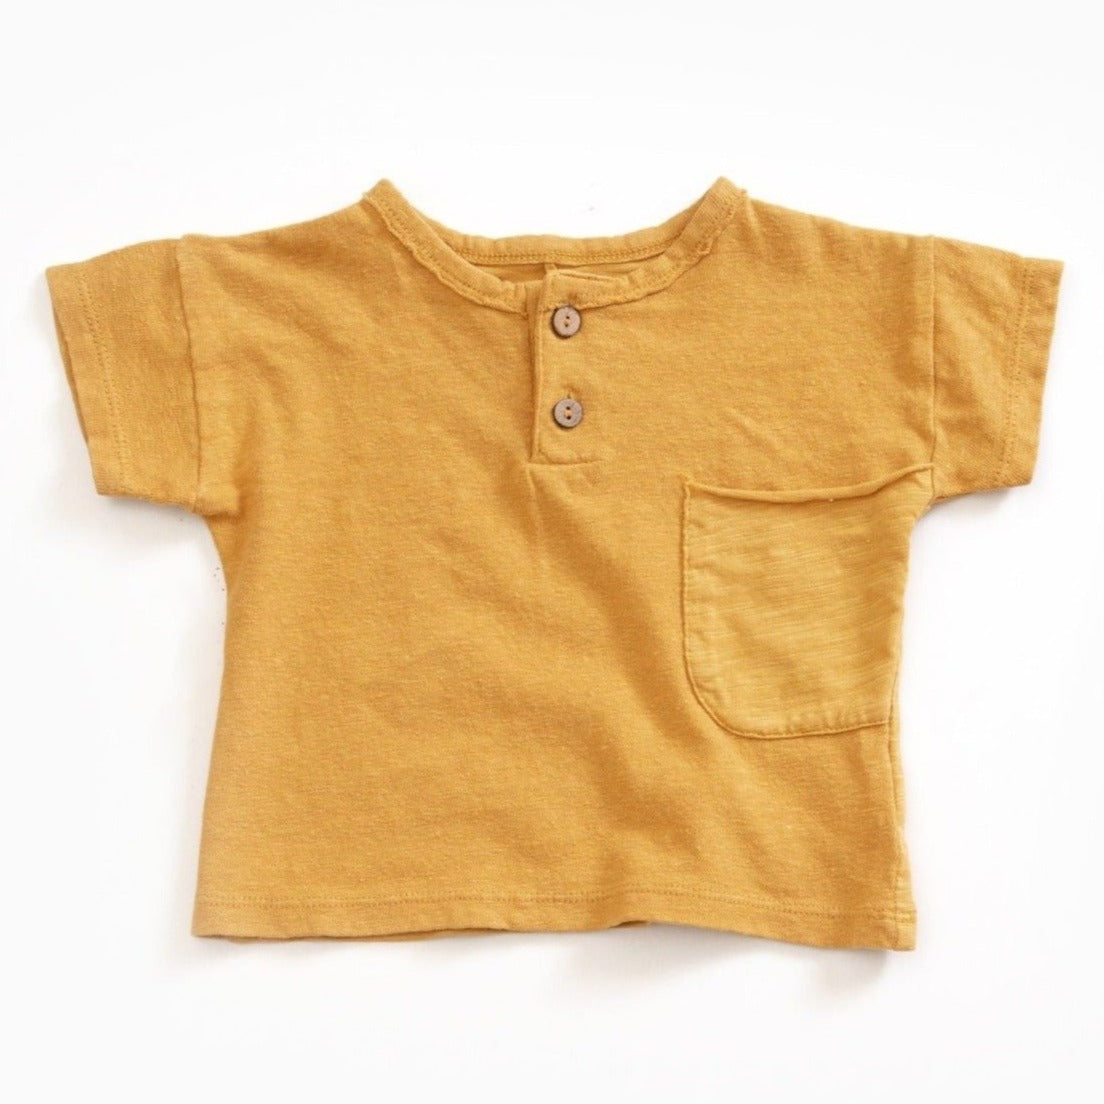 PLAY UP T-Shirt Jersey Organic Cotton/ Leinen